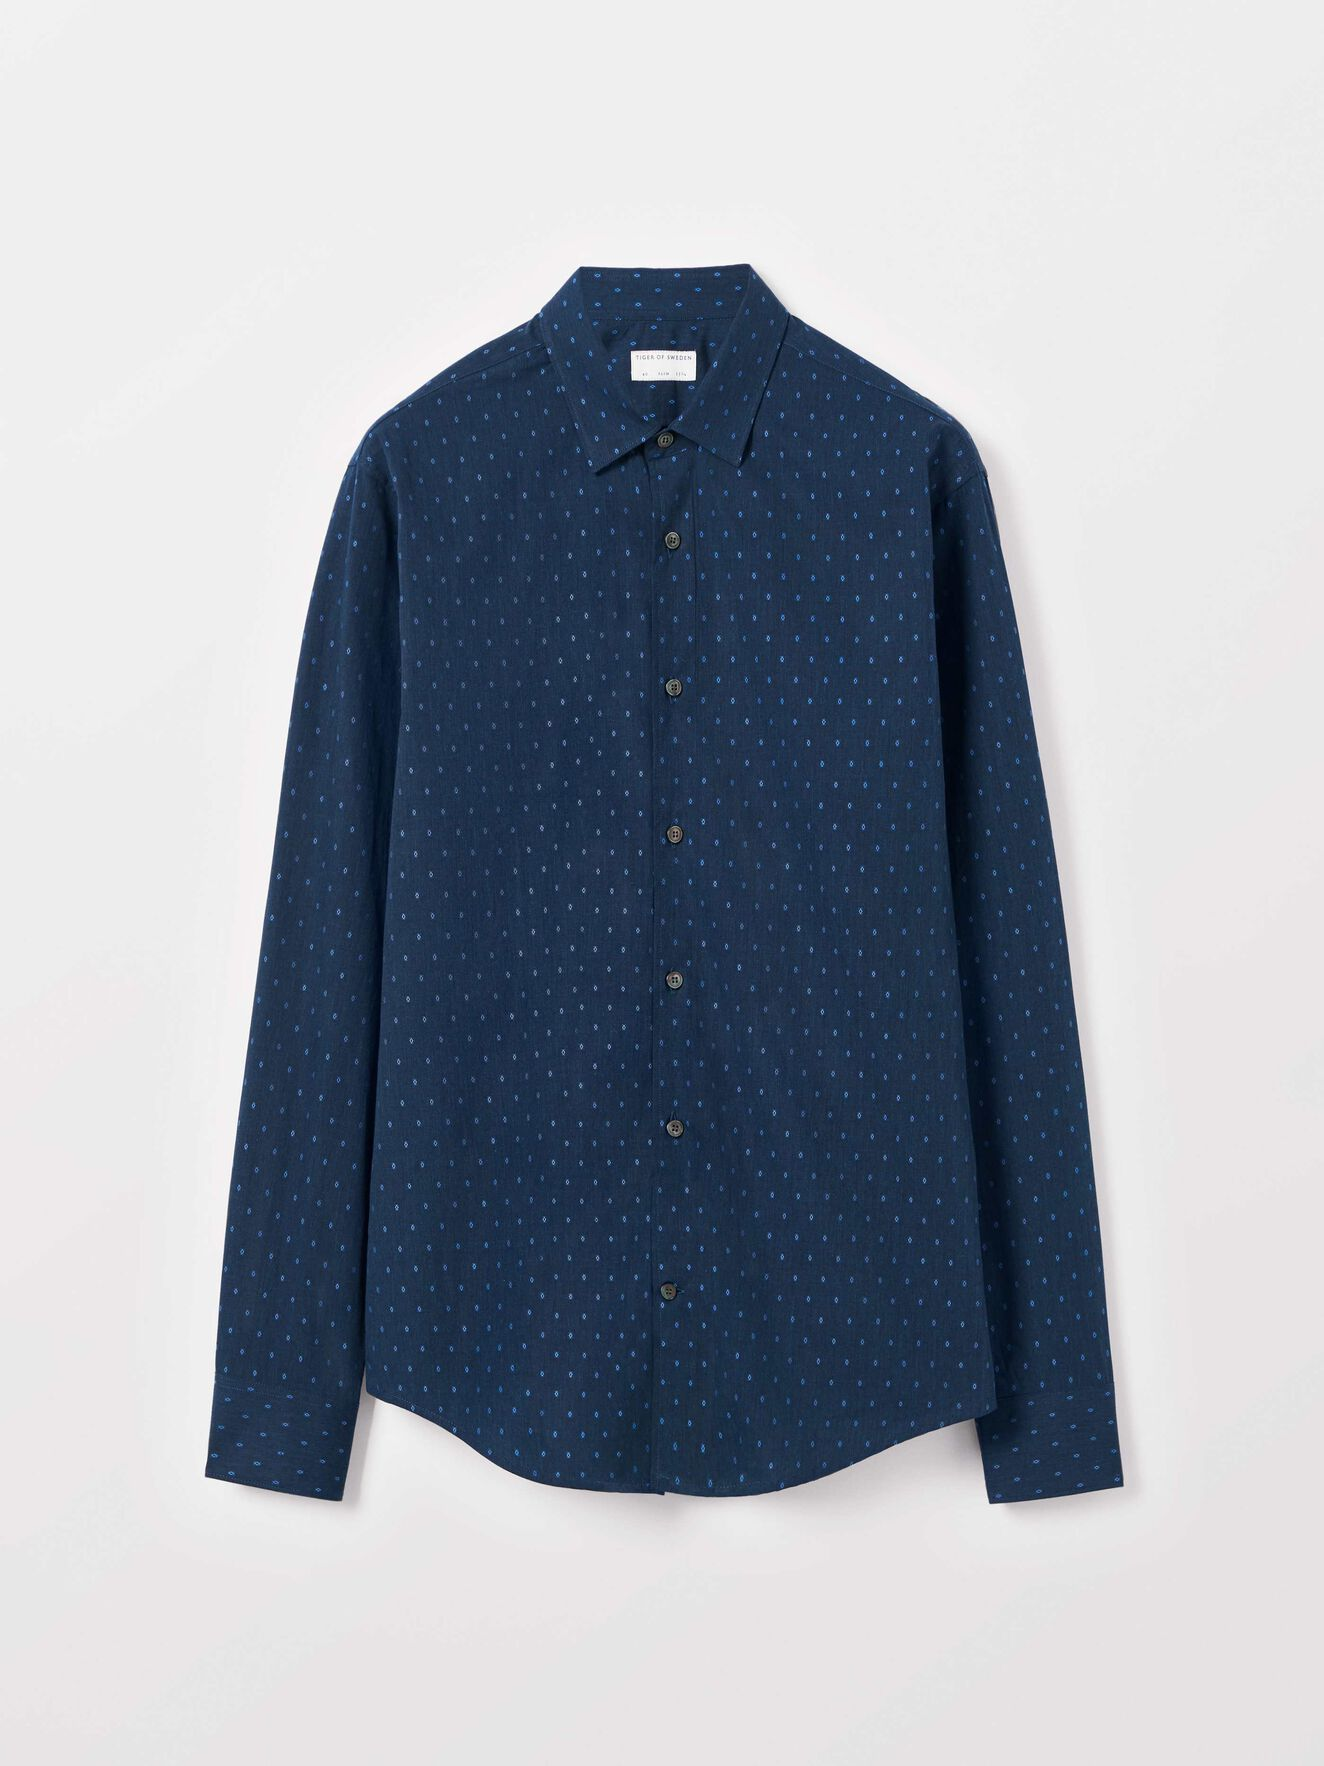 Farrell 4 Shirt in Light Ink from Tiger of Sweden